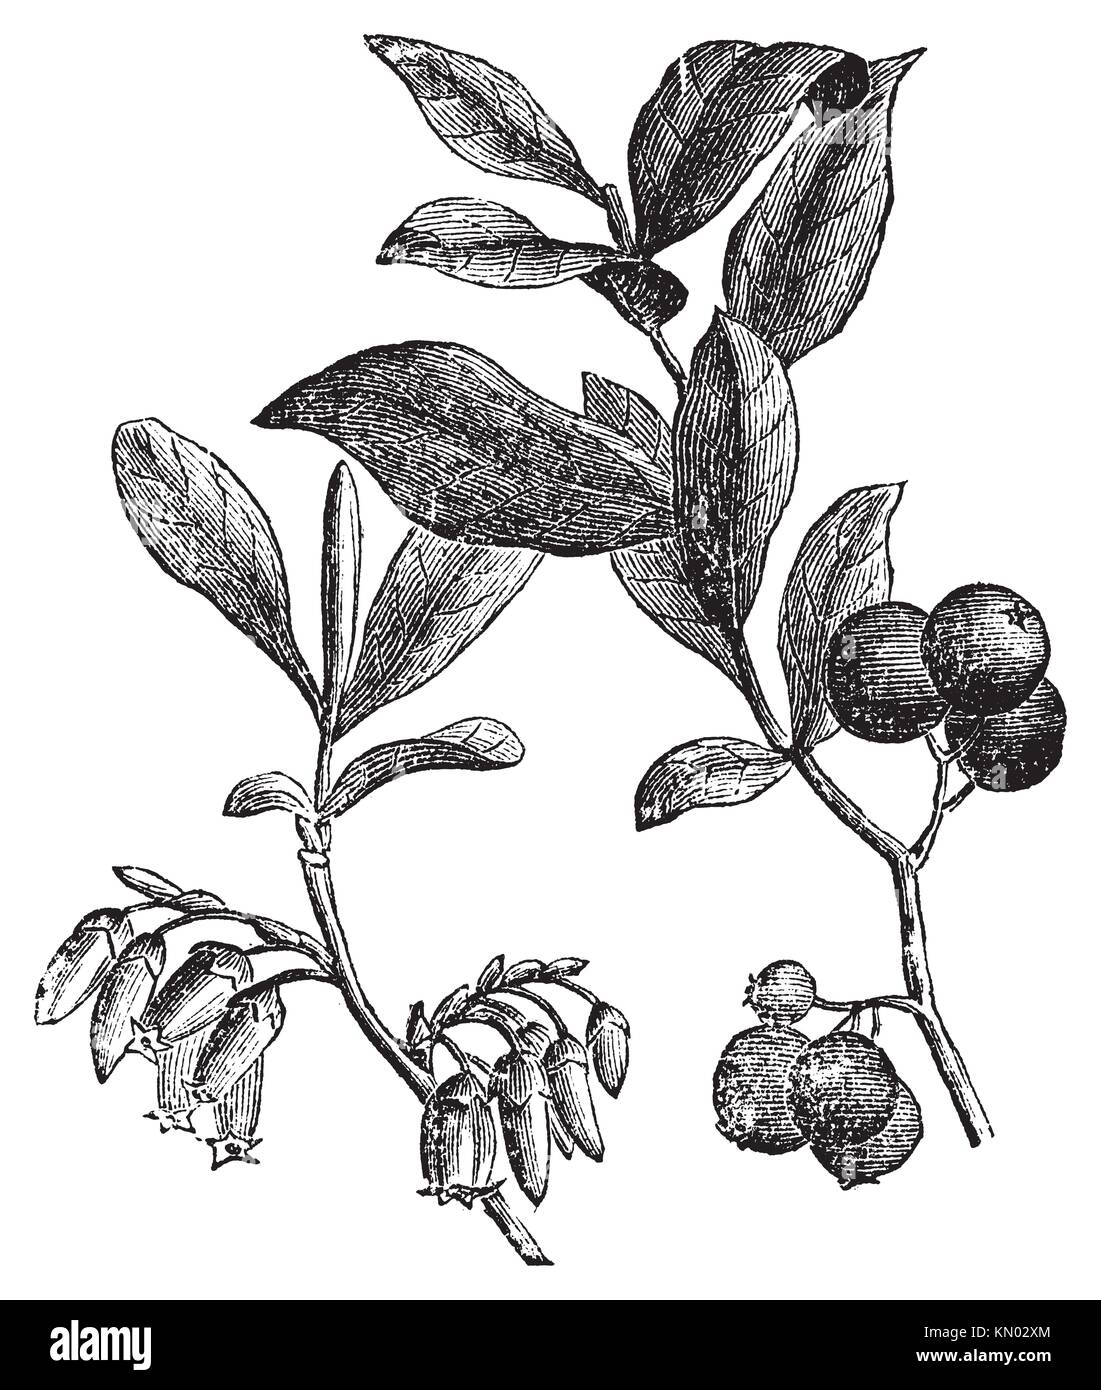 Huckleberry or Gaylussacia resinosa engravin  Old vintage engraved illustration of huckleberry plant  The huckleberry - Stock Image